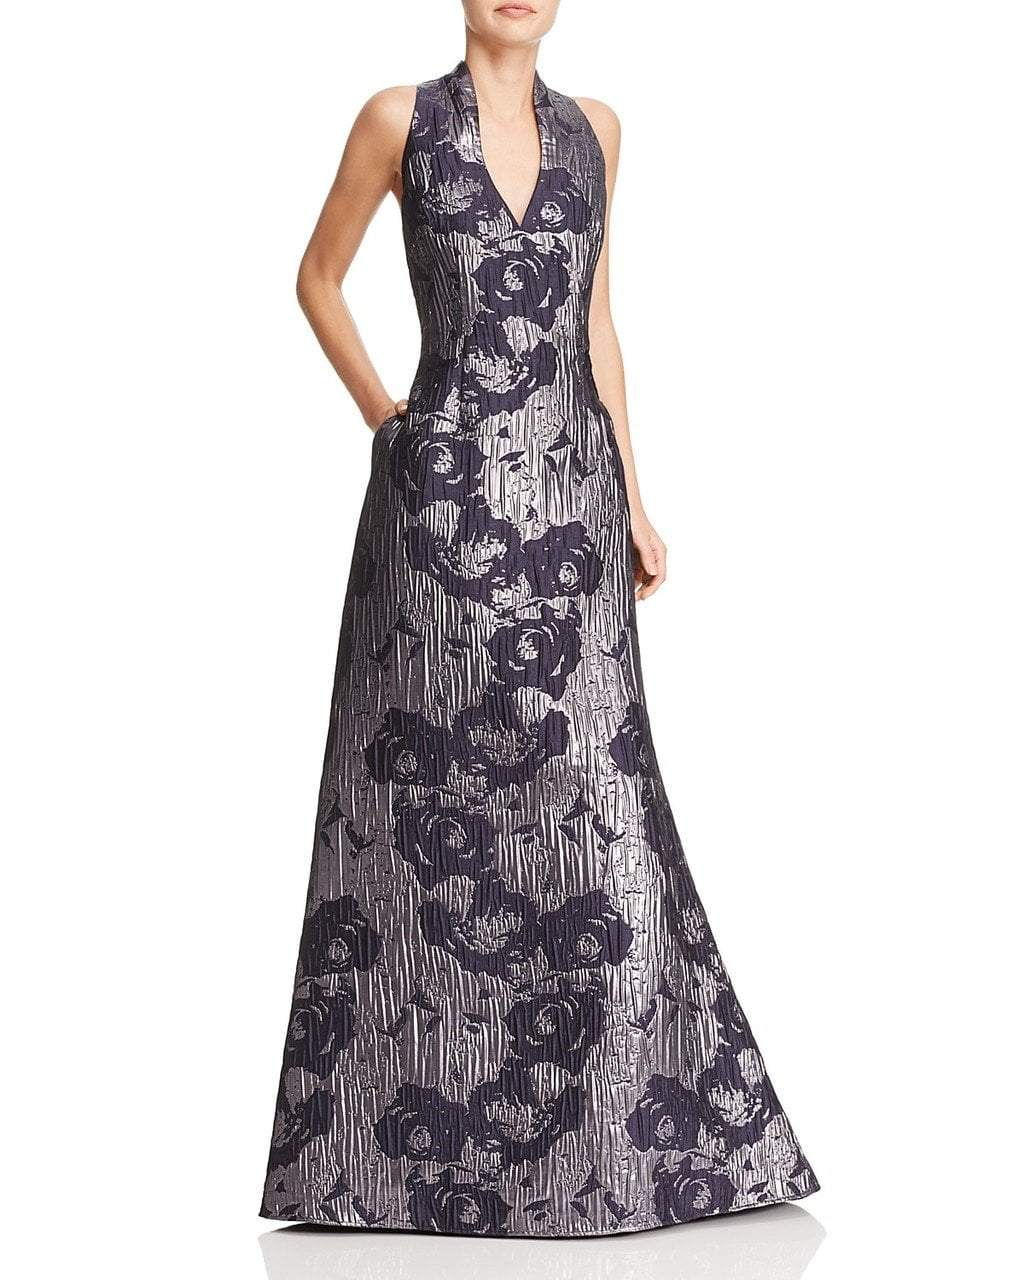 Aidan Mattox - MD1E200784 Sleeveless Metallic Floral Print Gown in Black and Silver